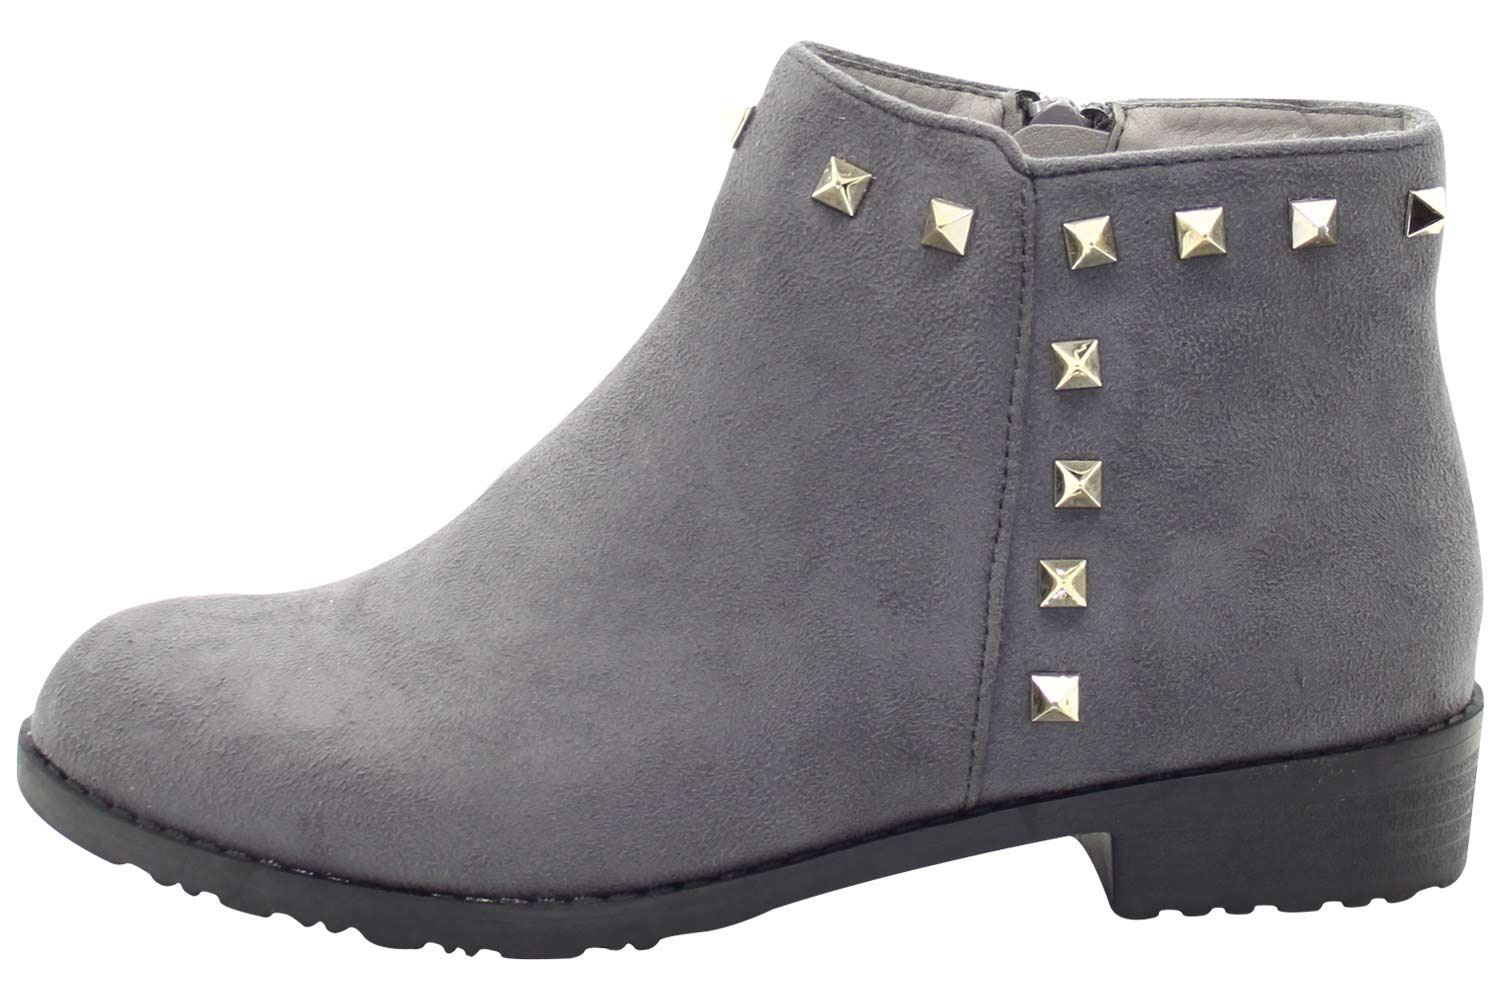 New-Women-Chelsea-Ankle-Boots-Winter-Block-Heel-Ladies-Biker-Style-Boots thumbnail 23